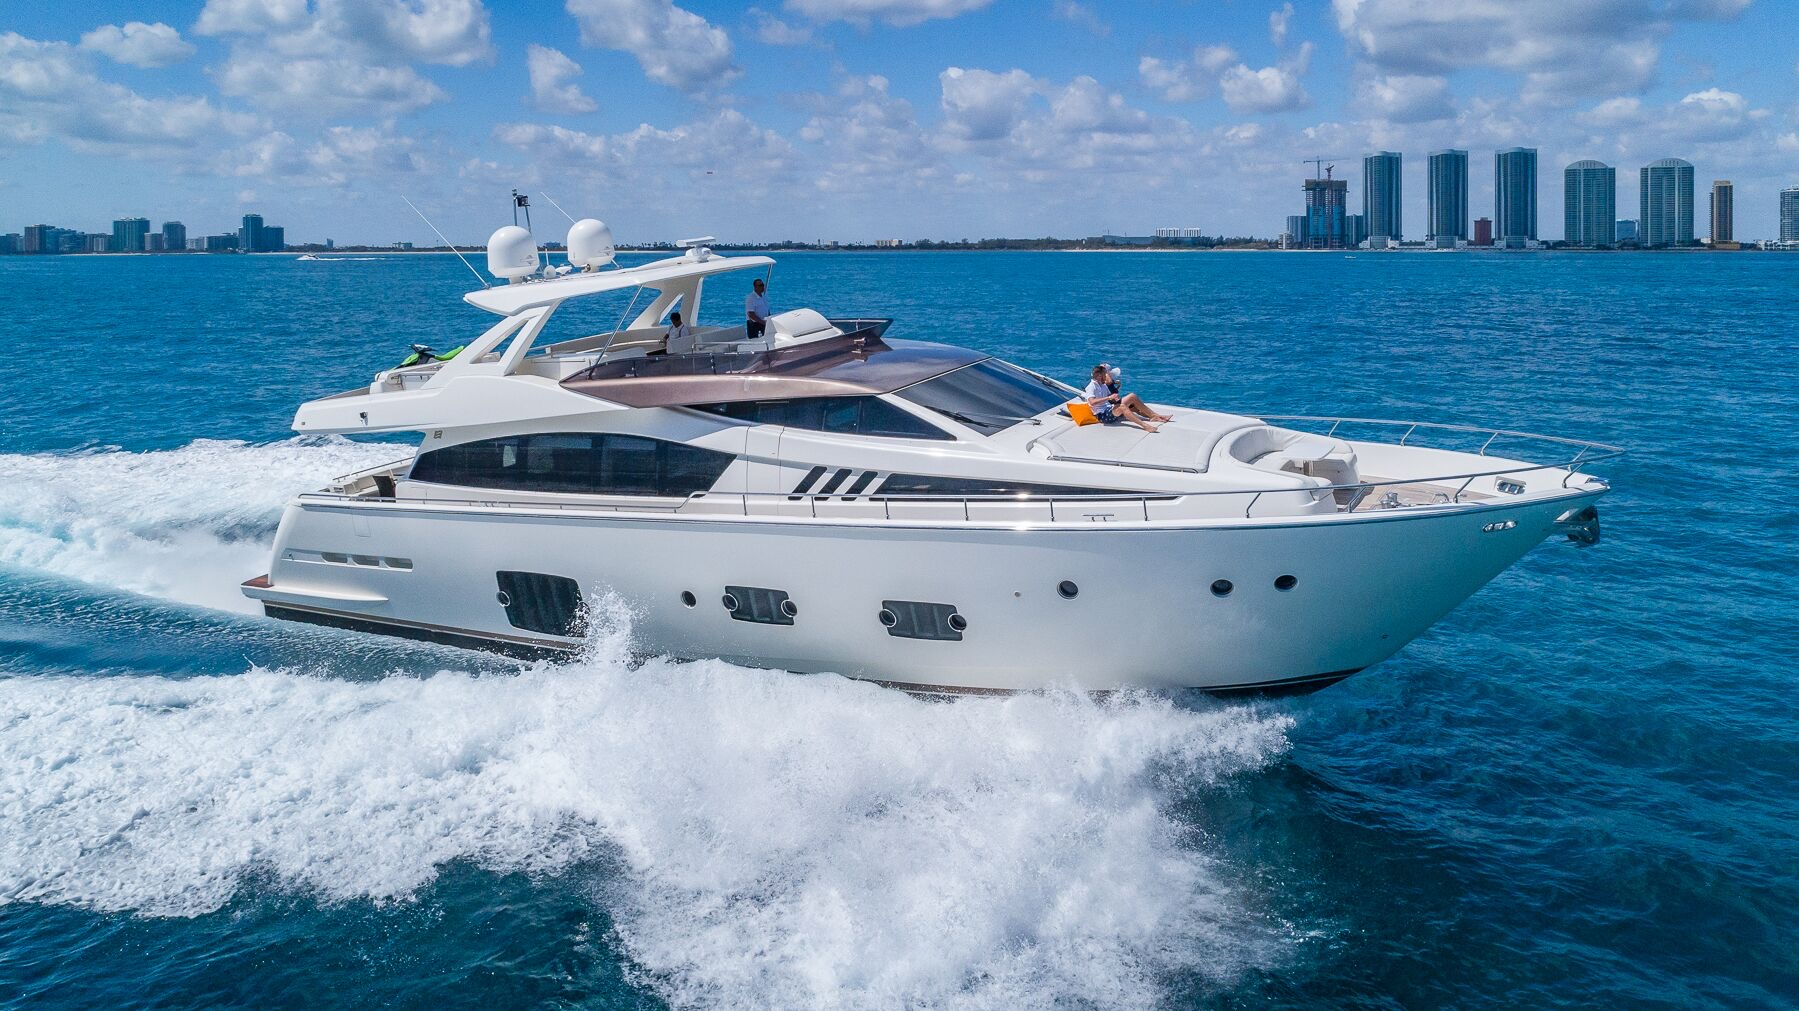 80 Foot Ferretti Yacht Rental South Beach Miami